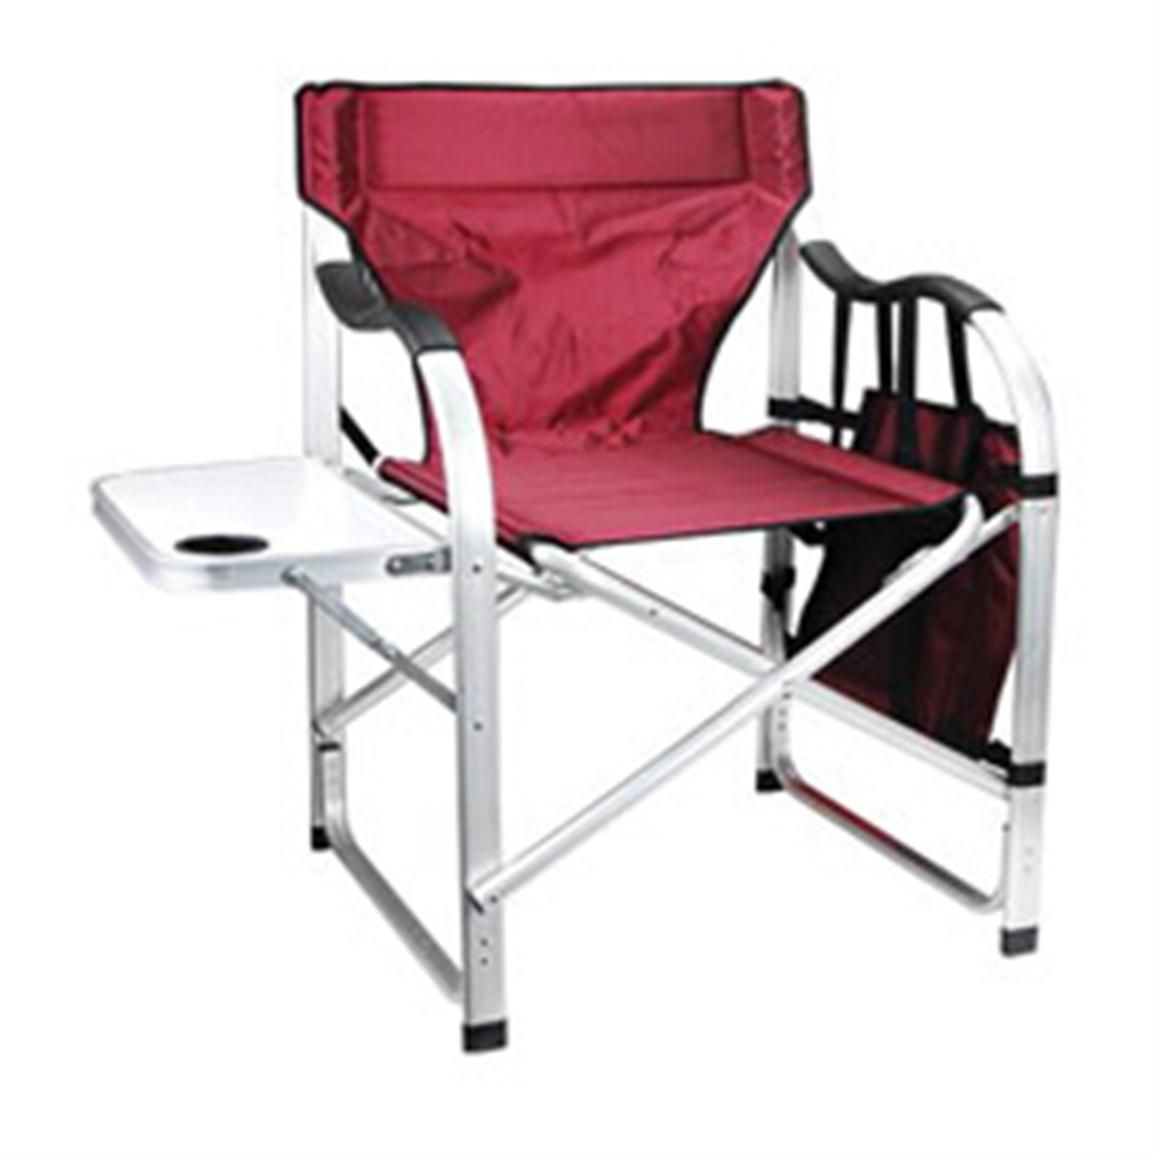 Ikea Campingstuhl Heavy Duty Camp Stuhl Stühle Camping Chairs Furniture Und Chair